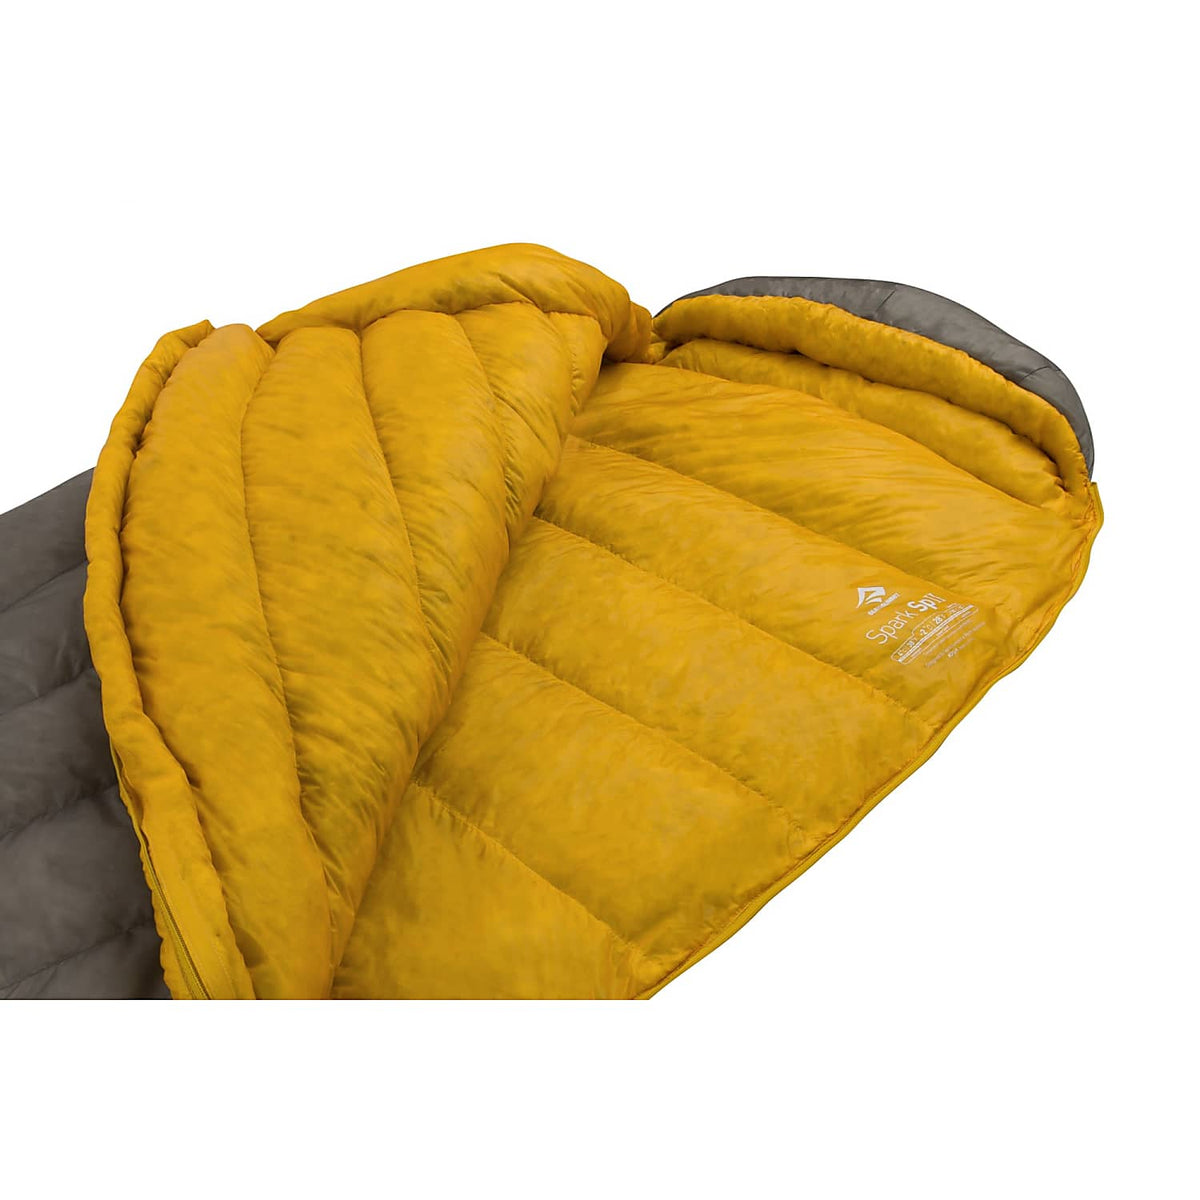 Sea to Summit Spark II sleeping bag, shown 3/4 open with yellow lining